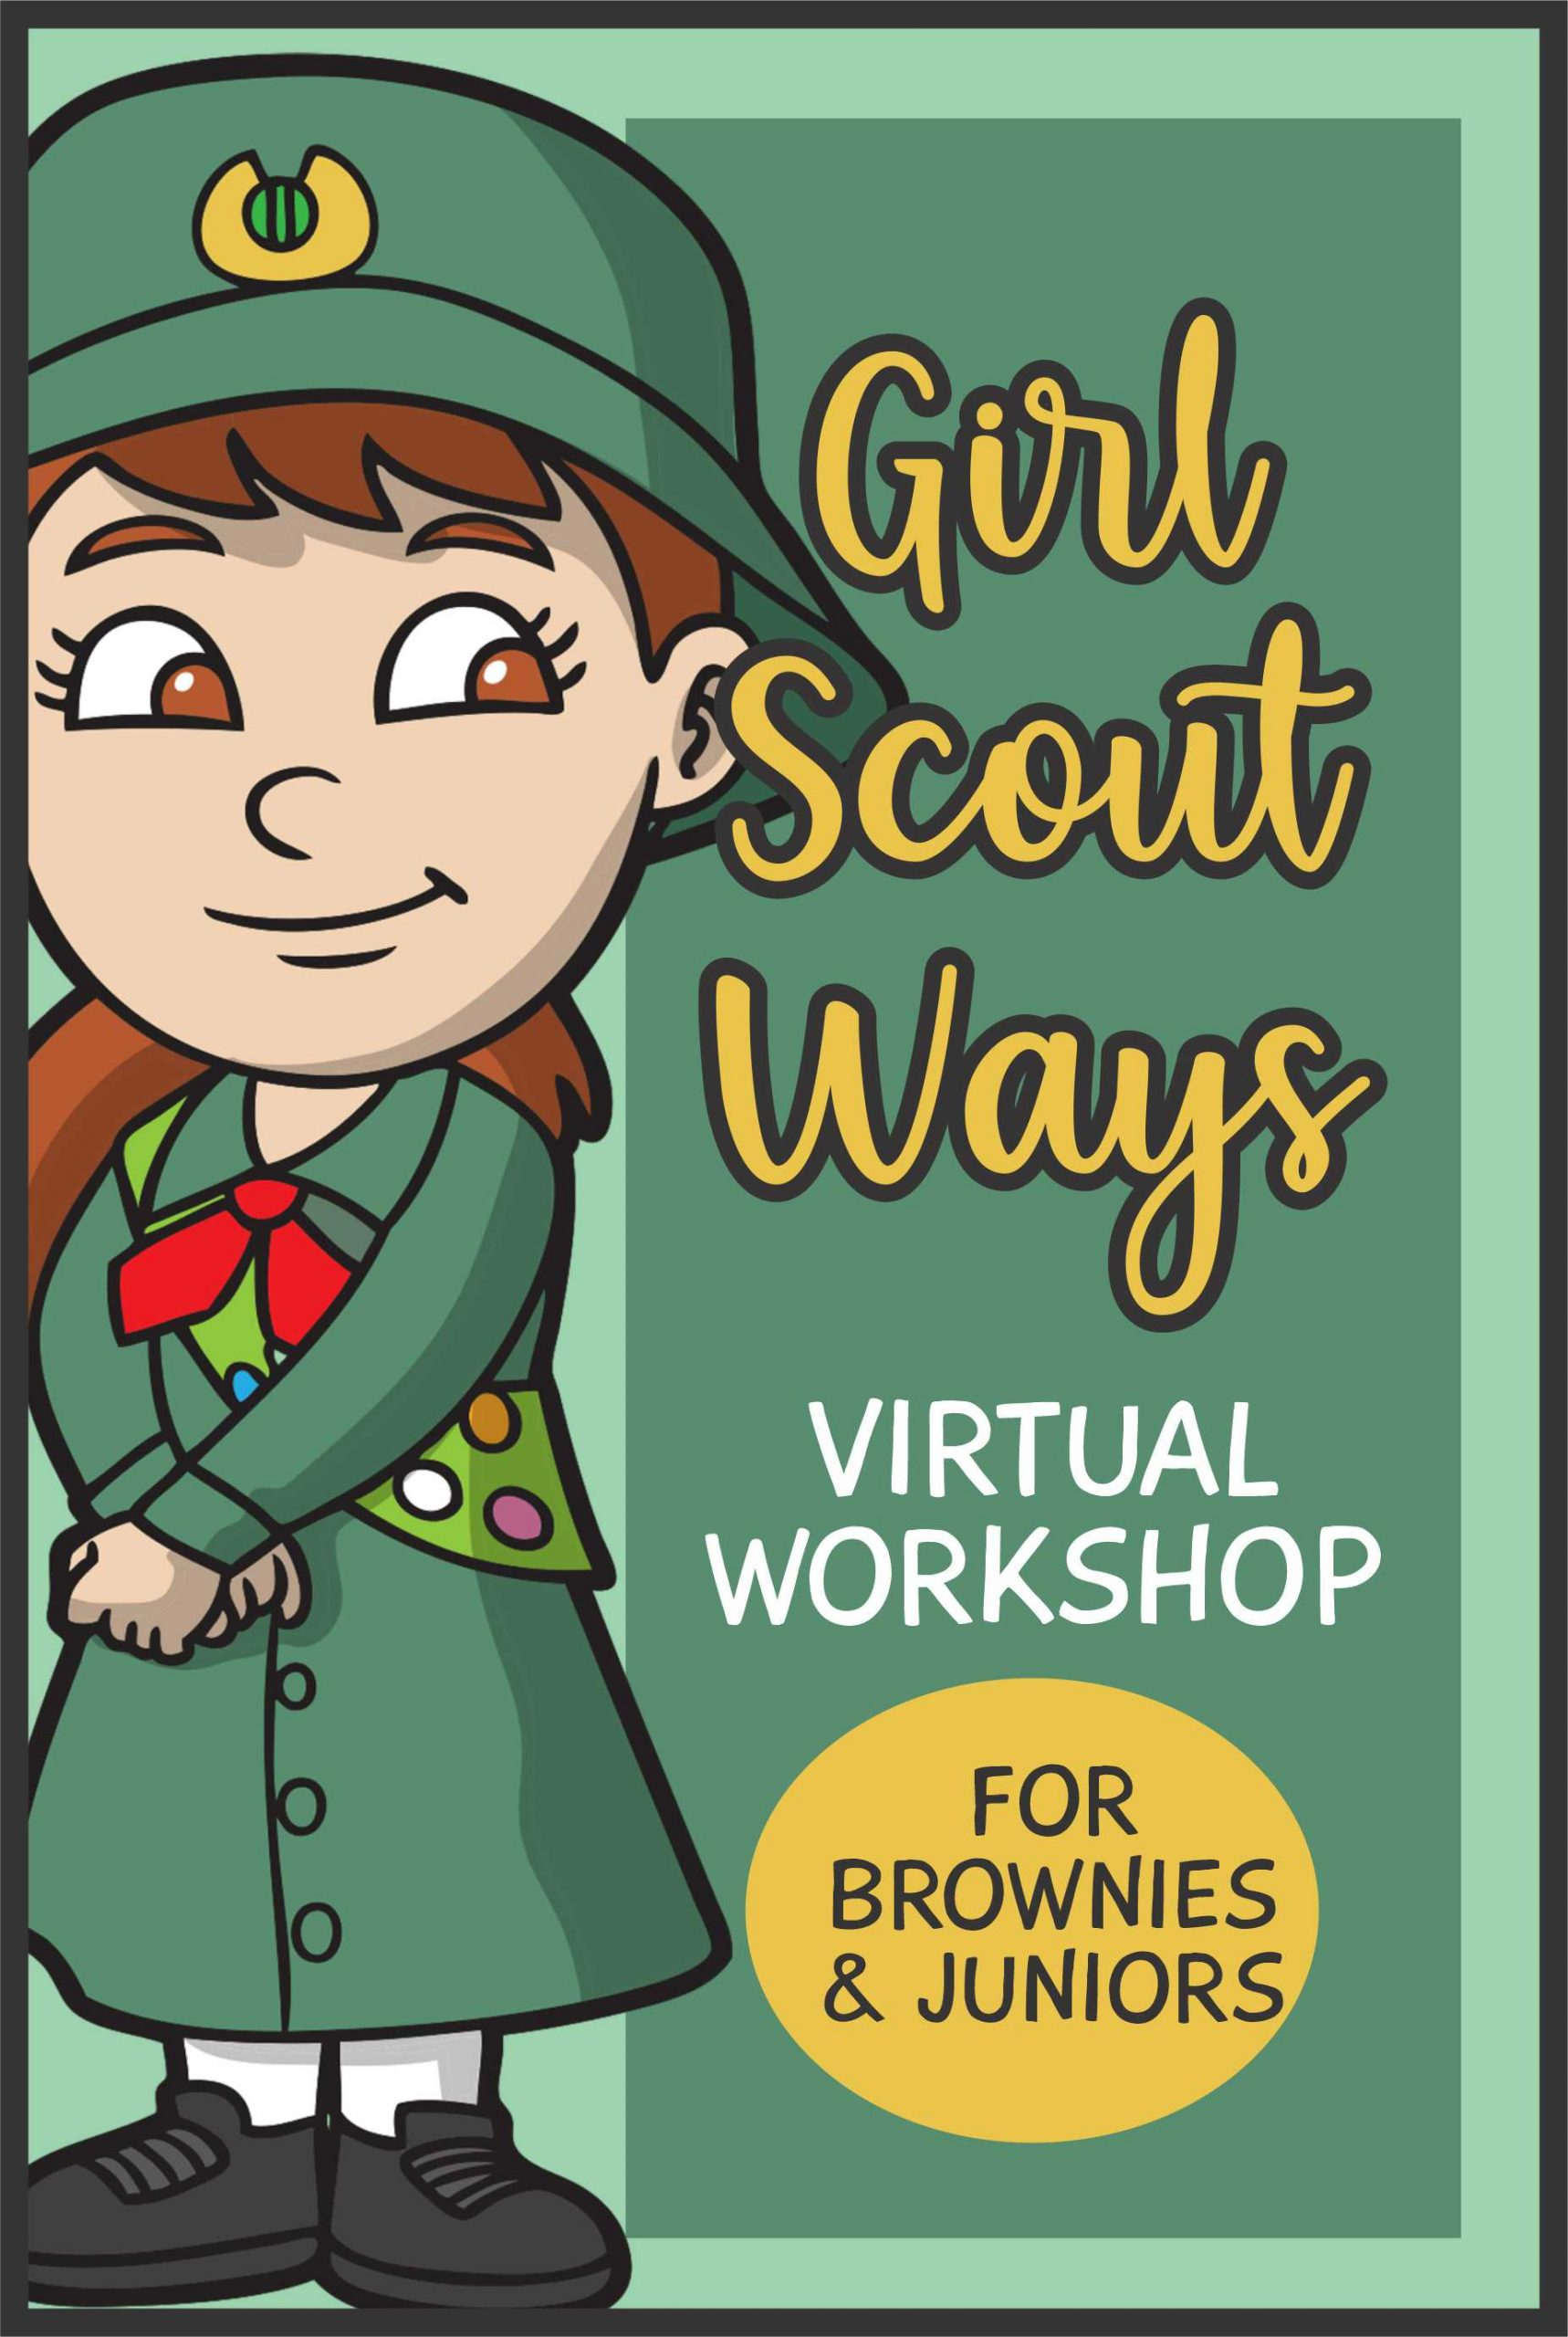 Join us for our Girl Scout Ways virtual Workshop during Girl Scout Week! Fun and engaging for Brownies and Juniors! #makingfriends #girlscoutways #gsways #virtualworkshop #girlscouts #girlscoutweek #girlscoutweek2021 #gsfunpatch #brownies #juniors via @gsleader411